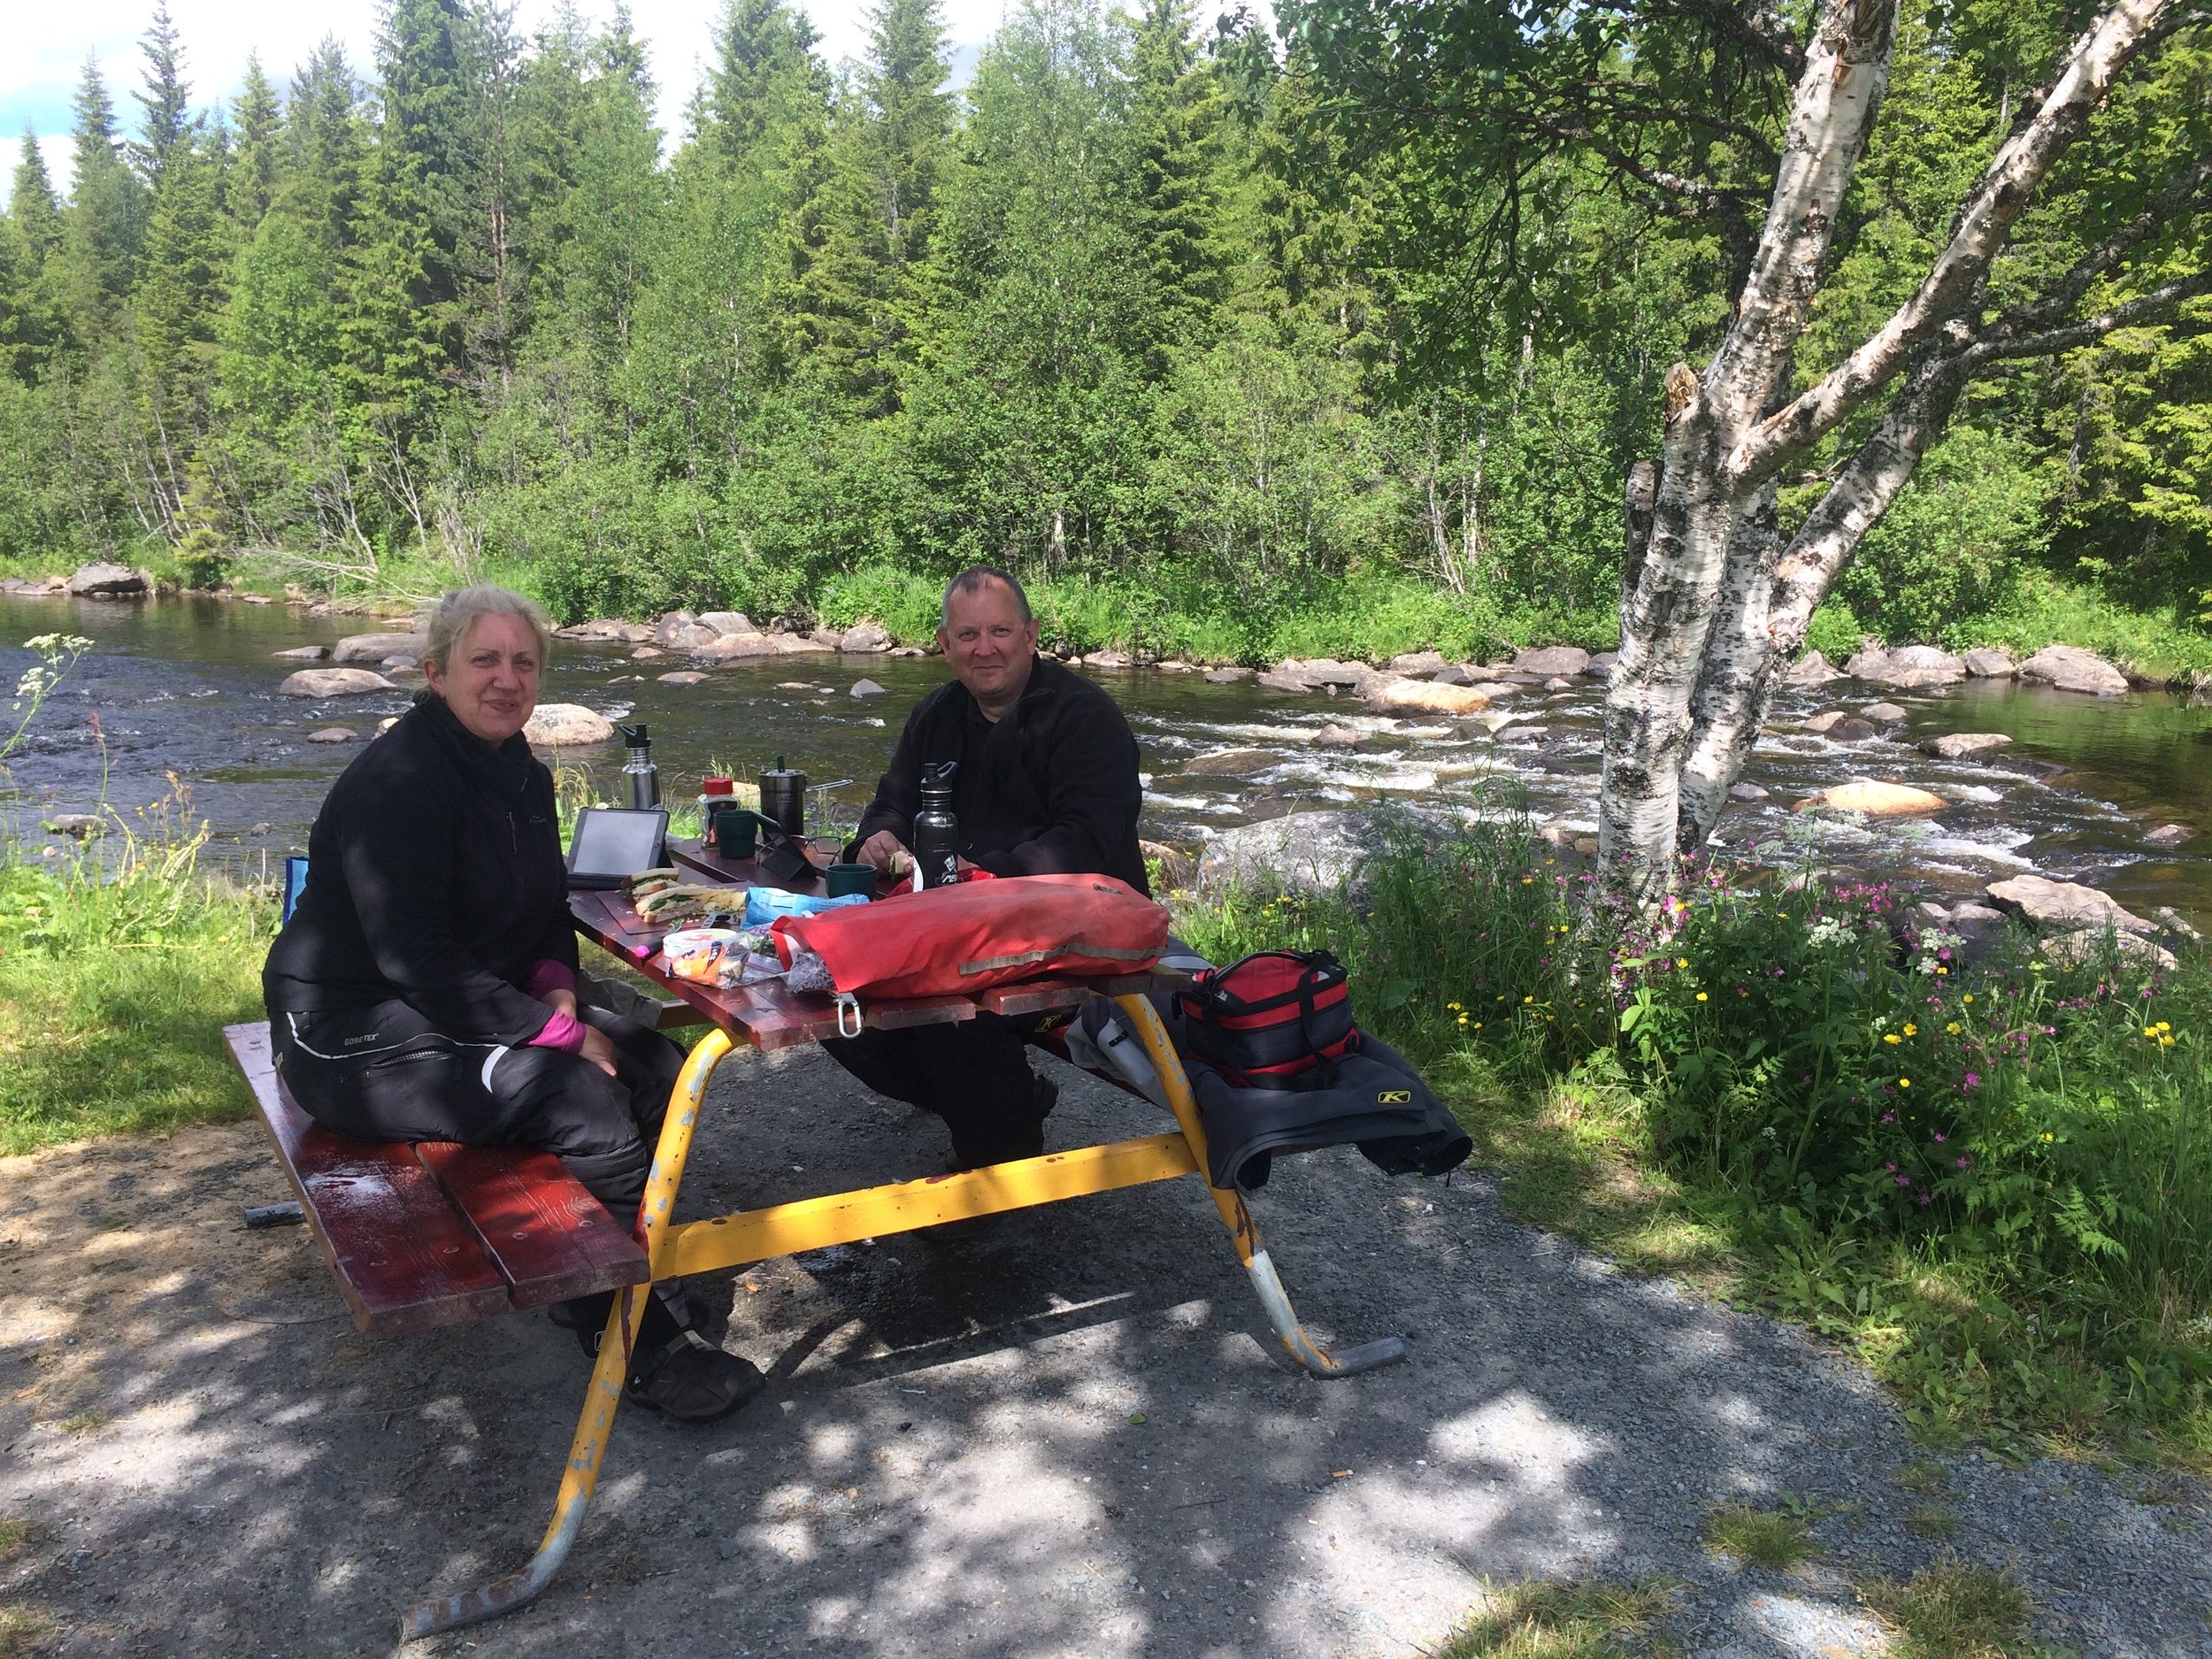 Picnic spot in Norway - just over the border from Sweden on the way to Trondheim